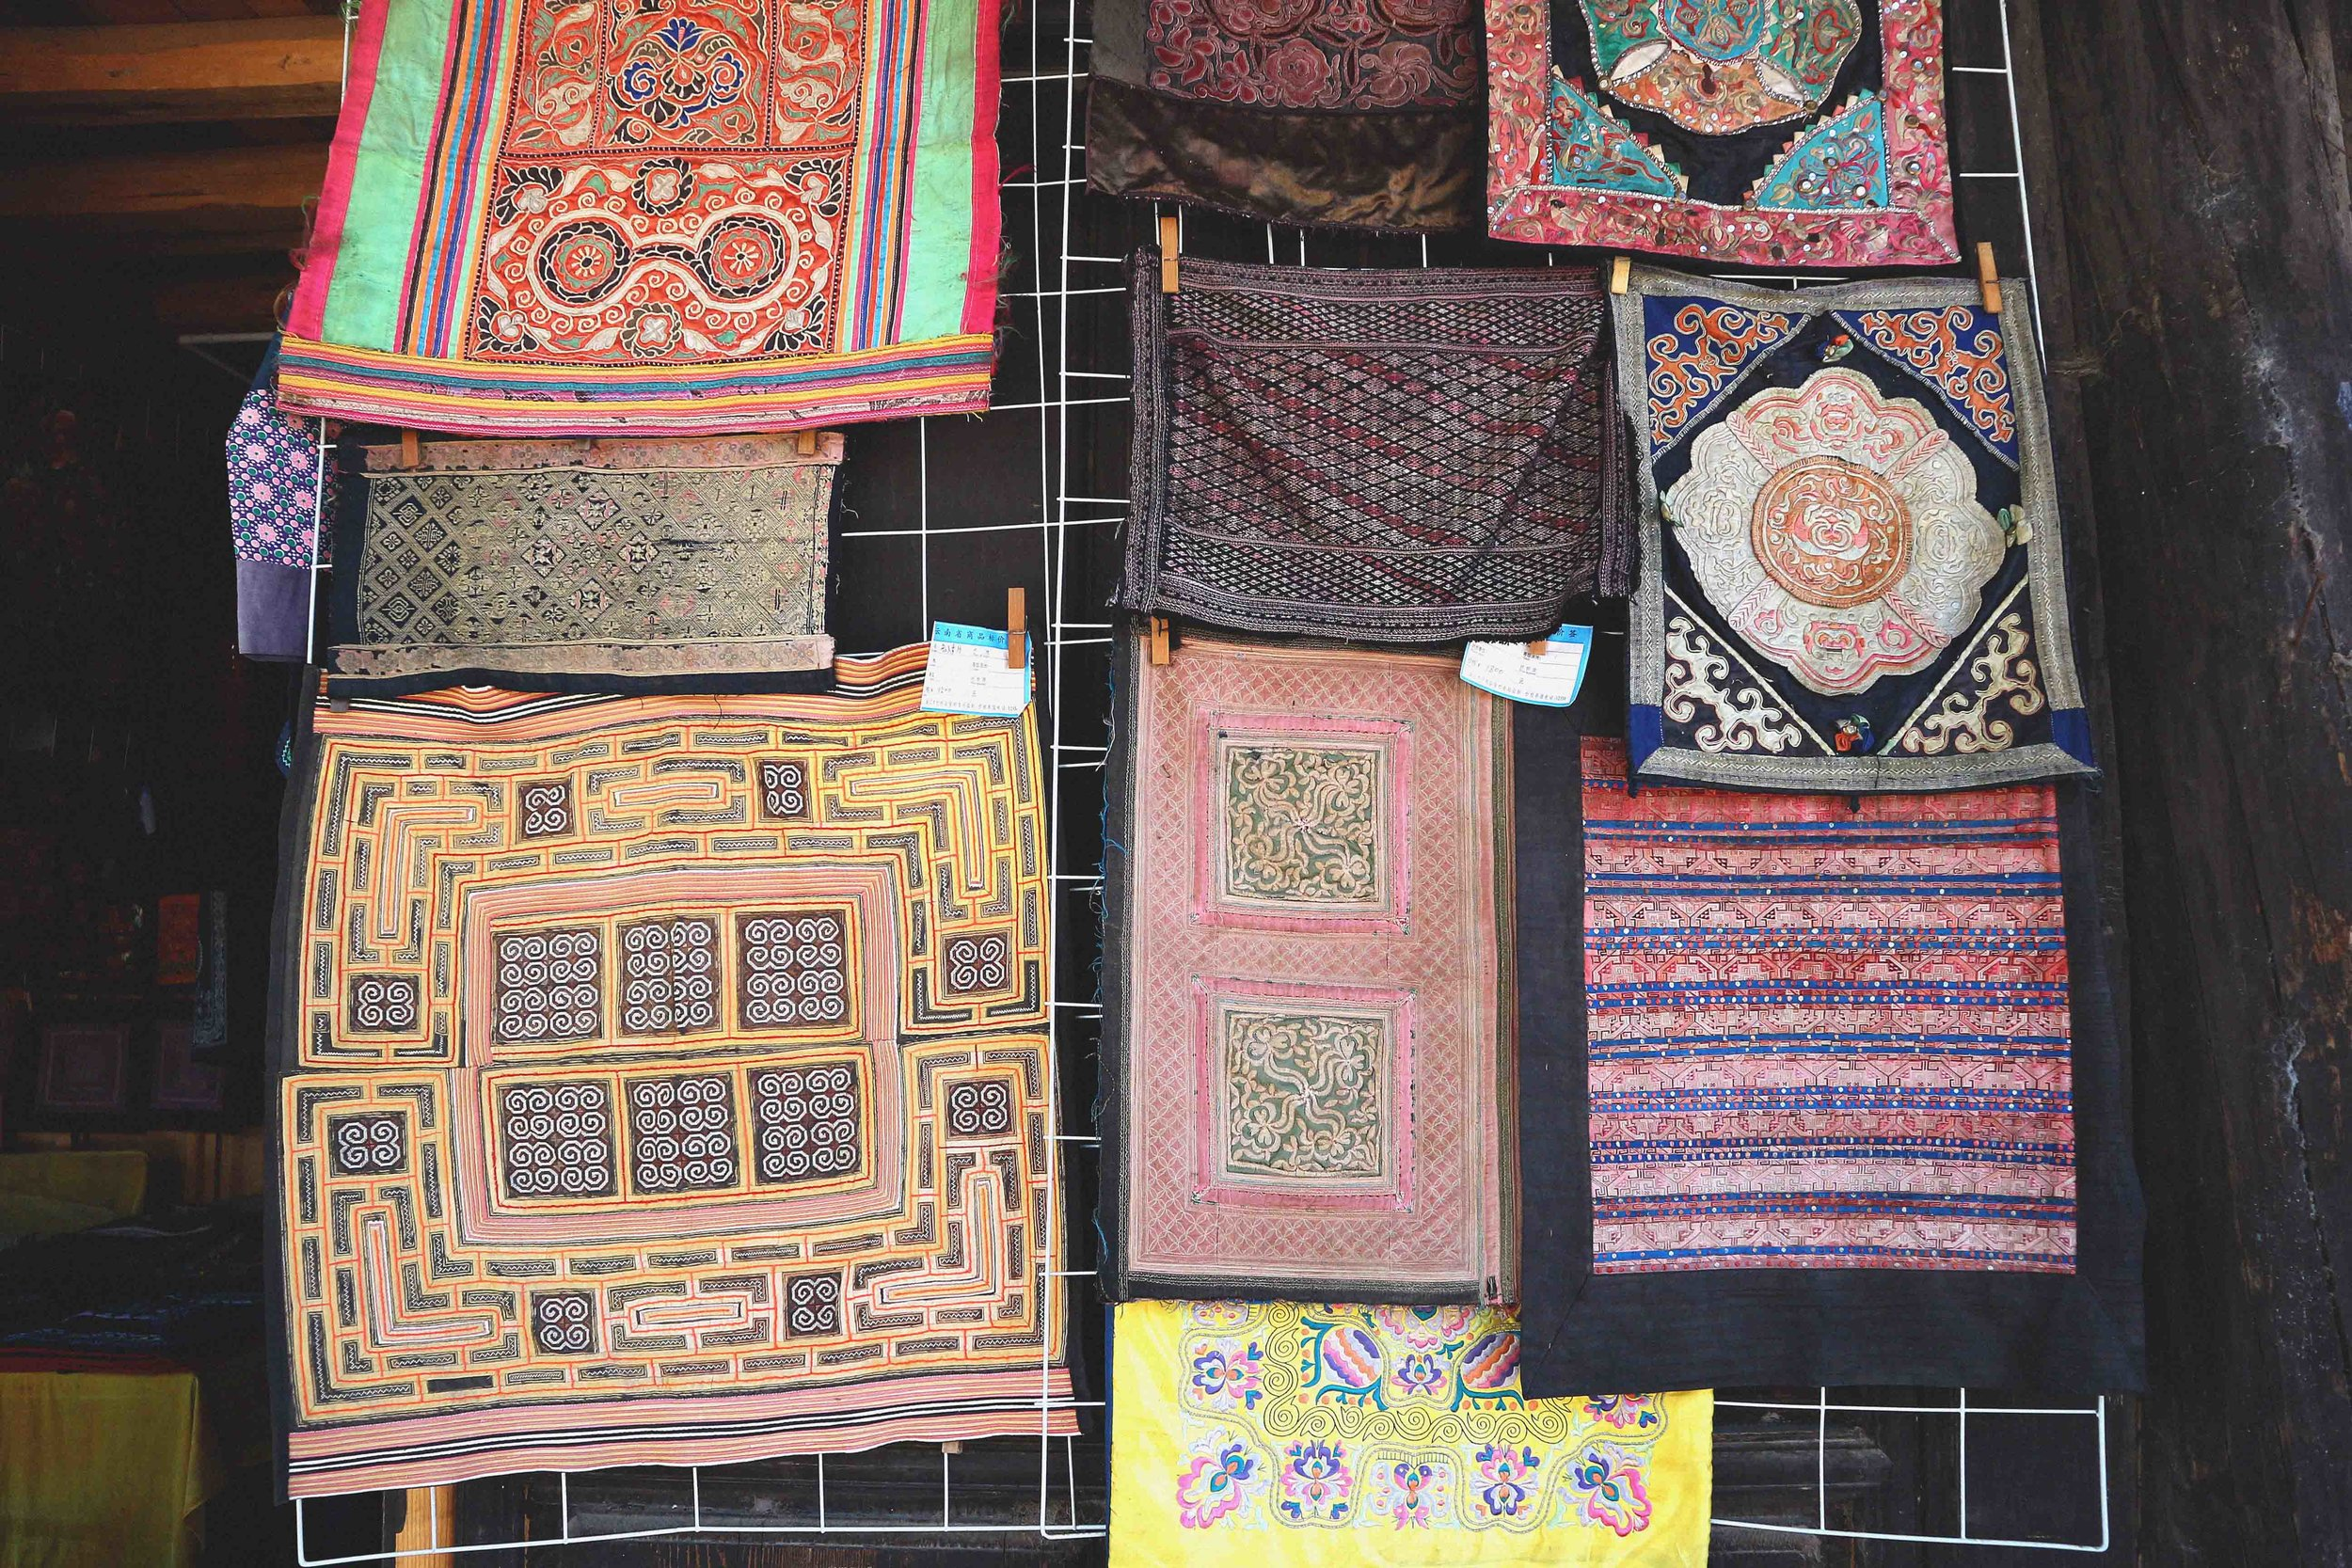 The hundred of antique embroideries for sale in Basha, all priced at a few hundred dollars a piece